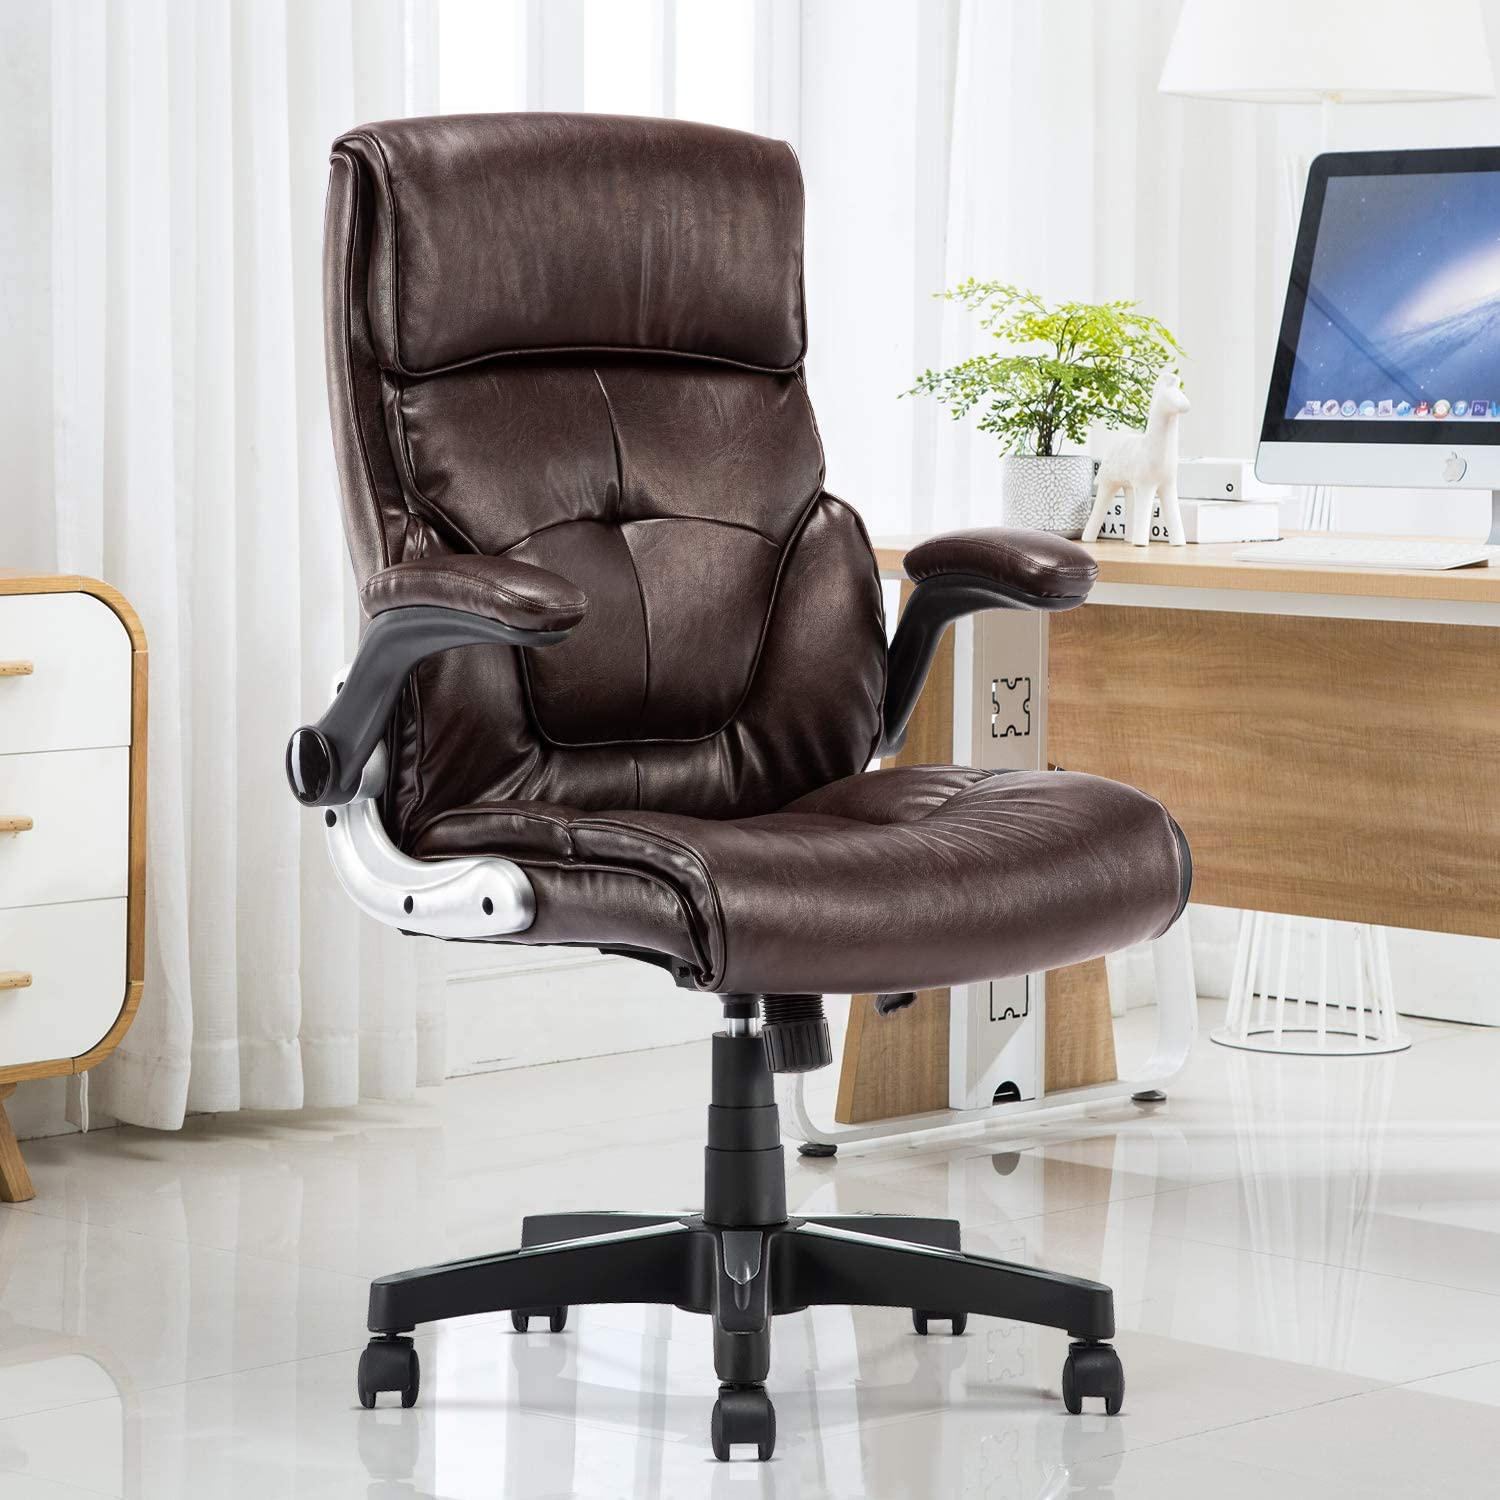 High Back Leather Office Chair - Adjustable Tilt Angle and Flip-up Arms  Executive Computer Desk Chair, Thick Padding for Comfort and Ergonomic  Design